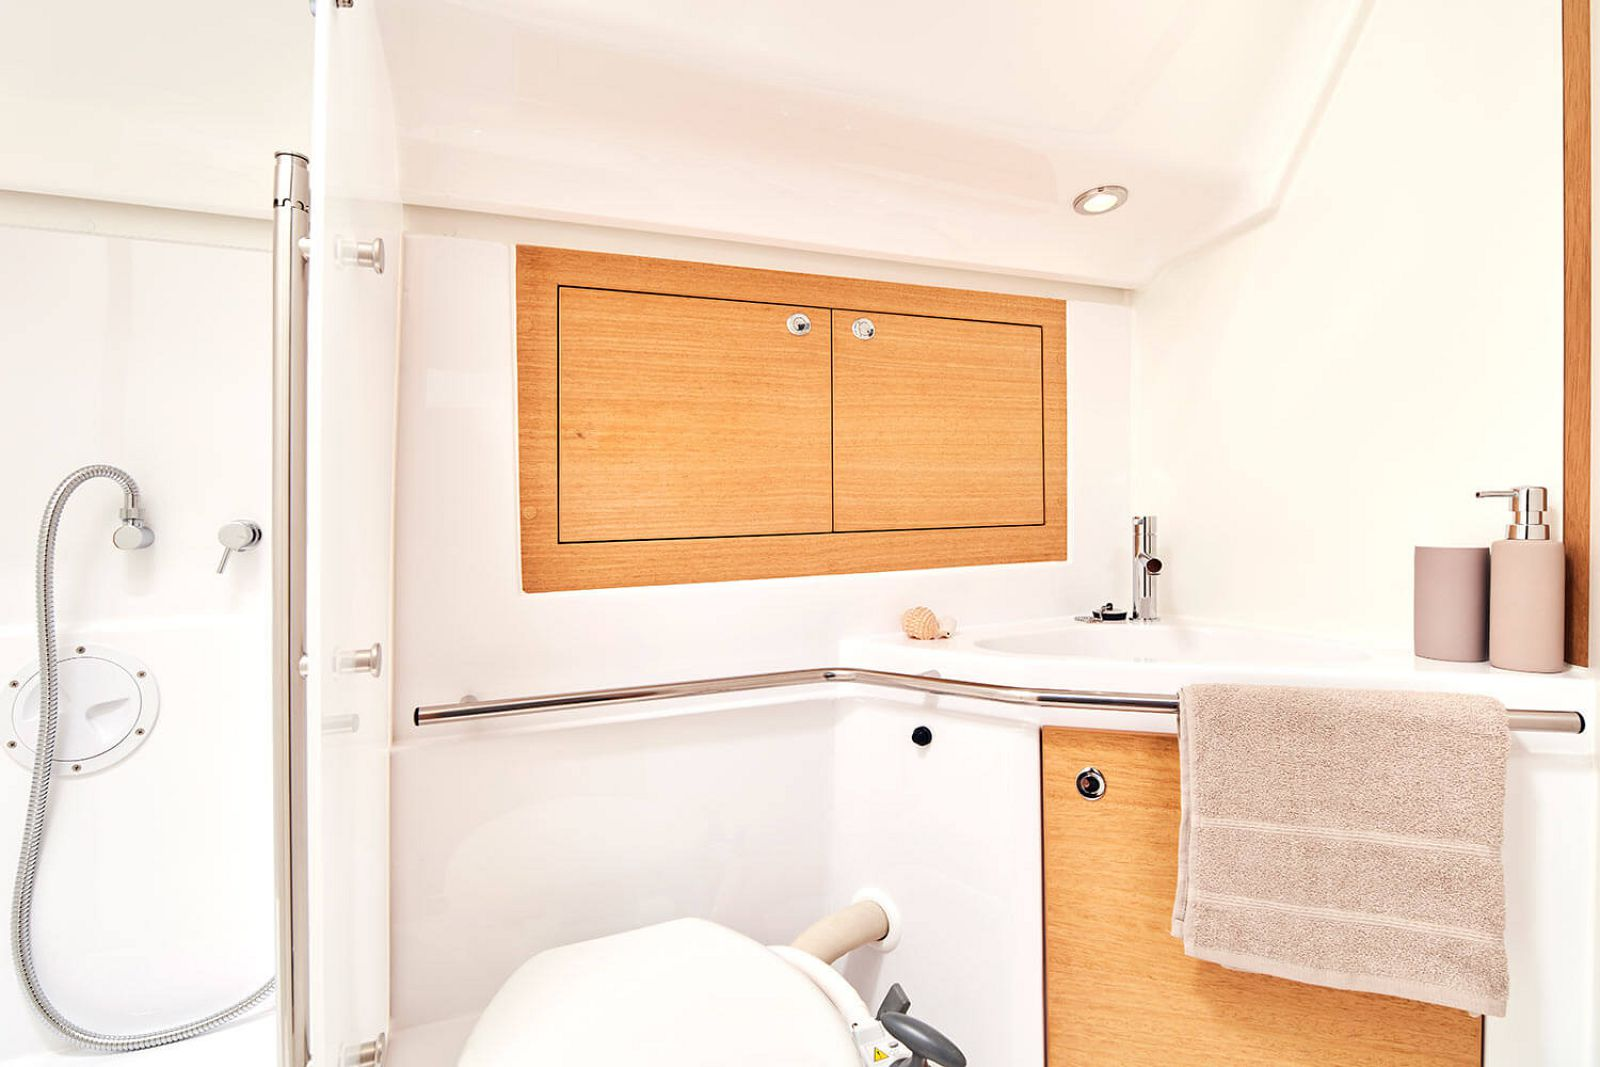 bathroom cabinet on the elan 45.1